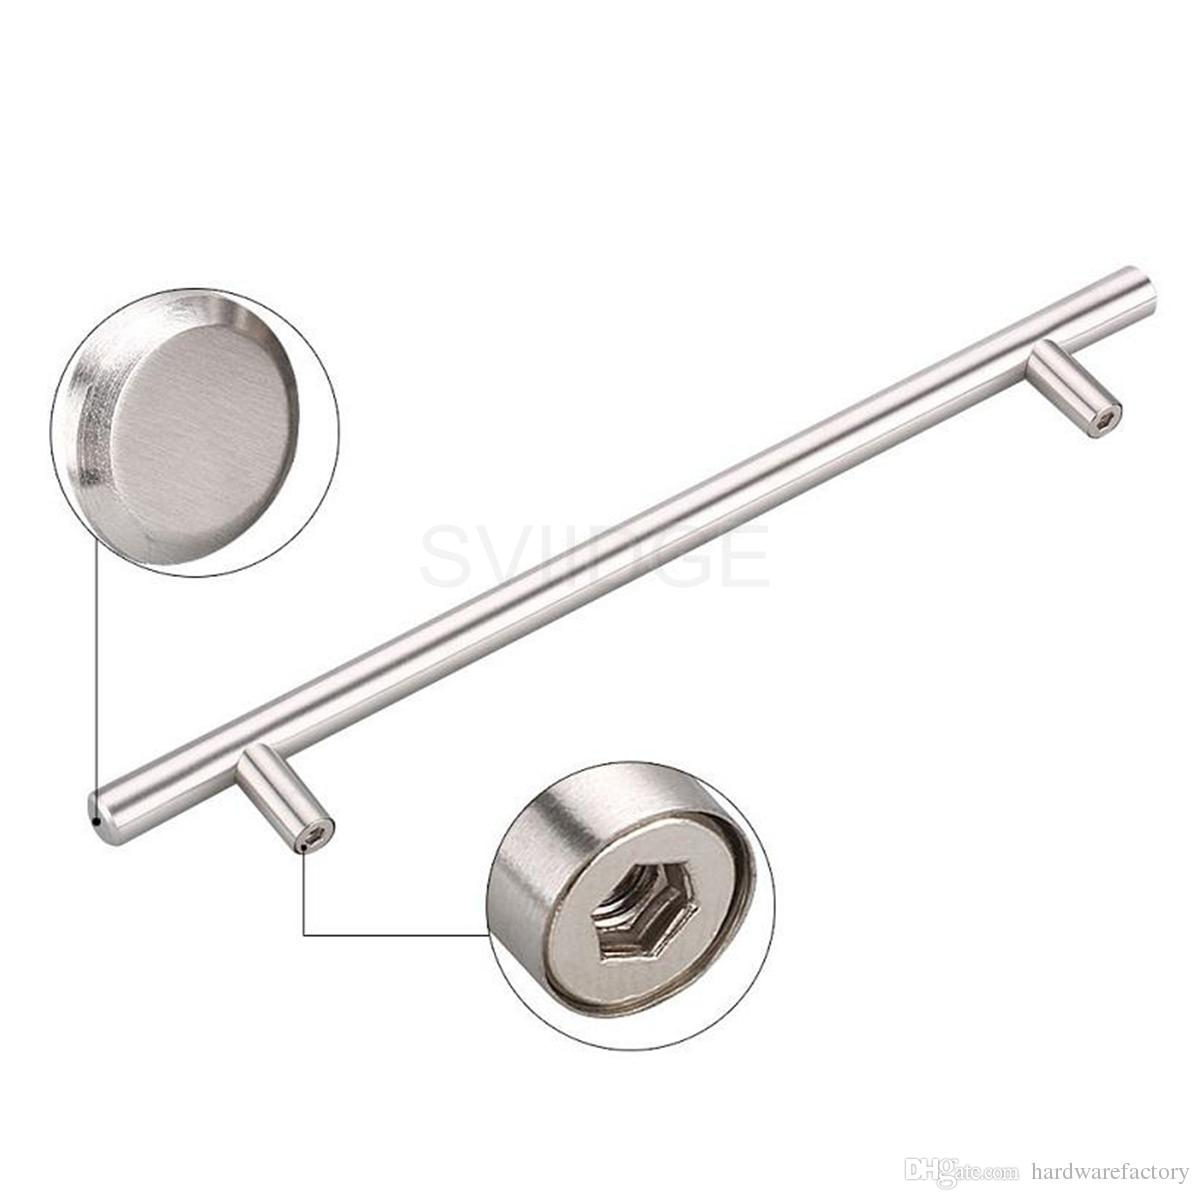 Stainless Steel Cabinet Handle Pull Knob Euro Style Bar Hollow Handle Pull Knob Diameter 12mm with screw